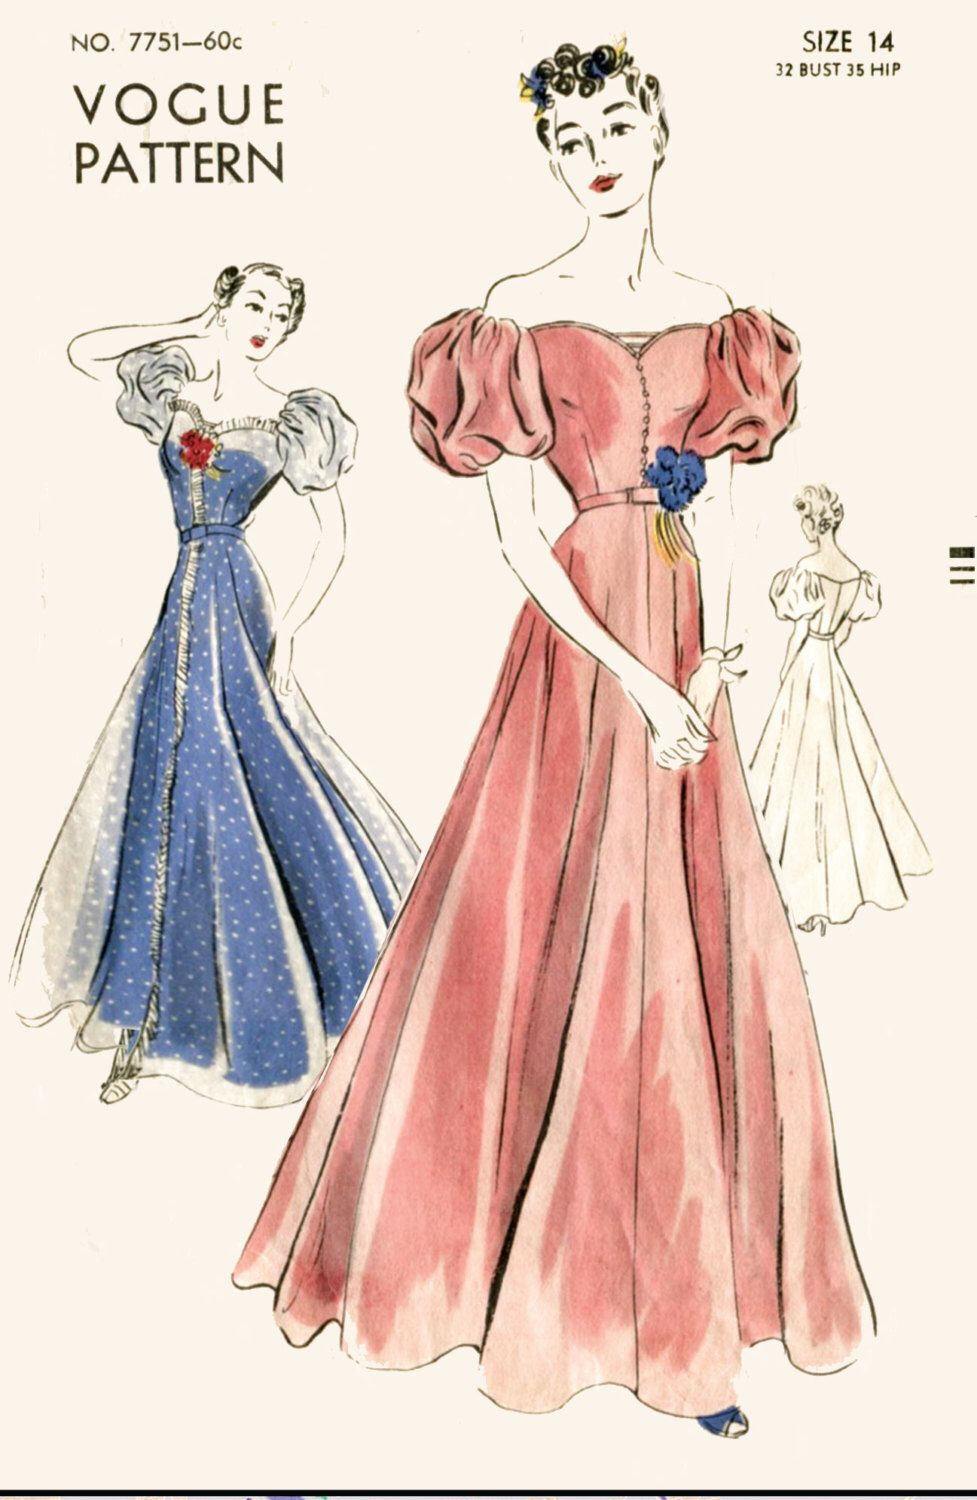 Vintage sewing pattern 1930s 1940s evening gown cocktail wedding ...